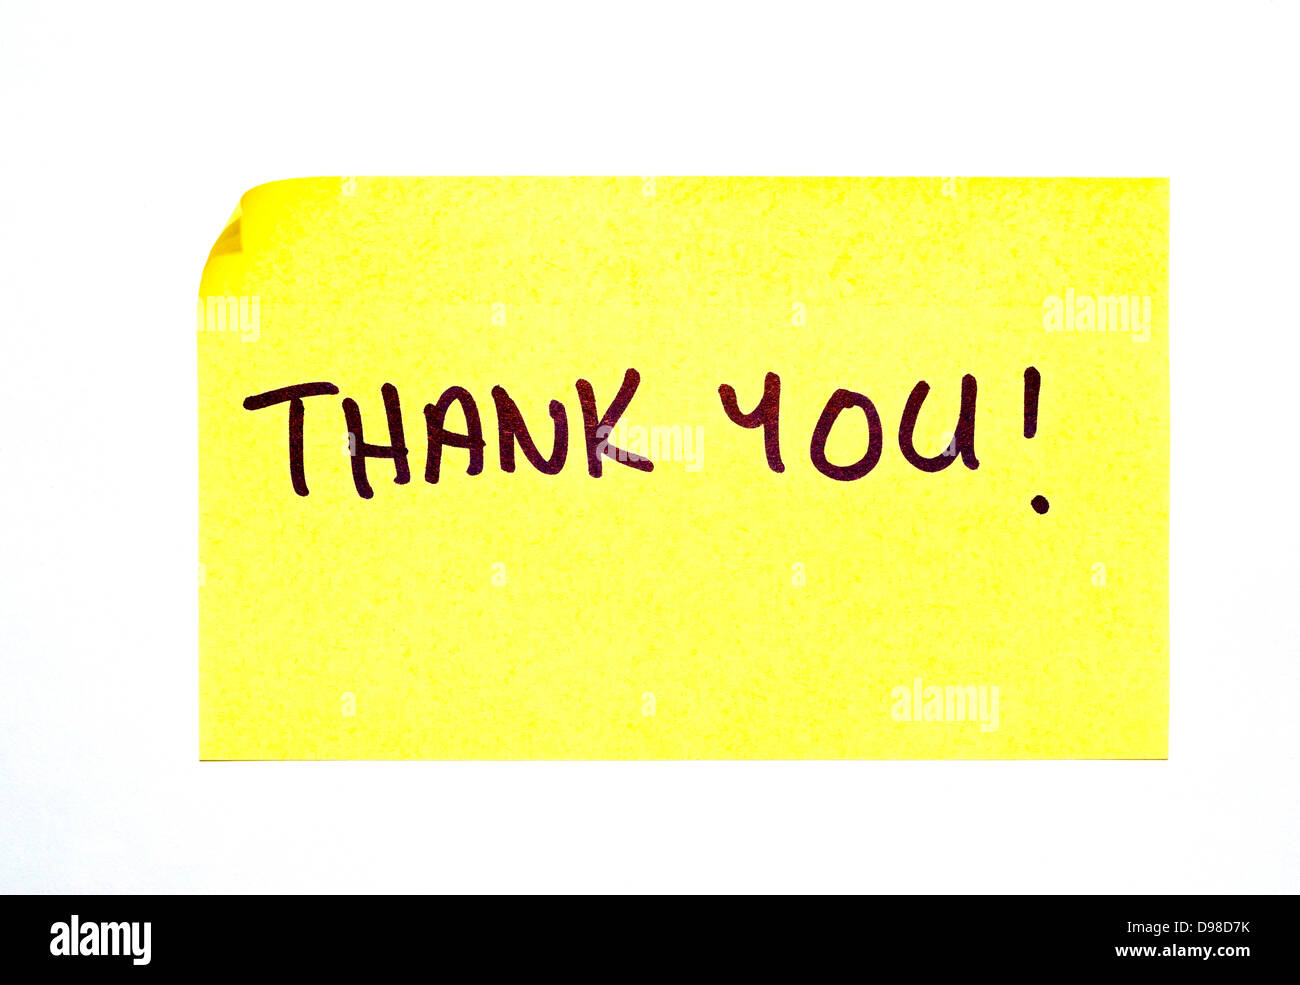 'Thank You!' written on a yellow post it note - Stock Image